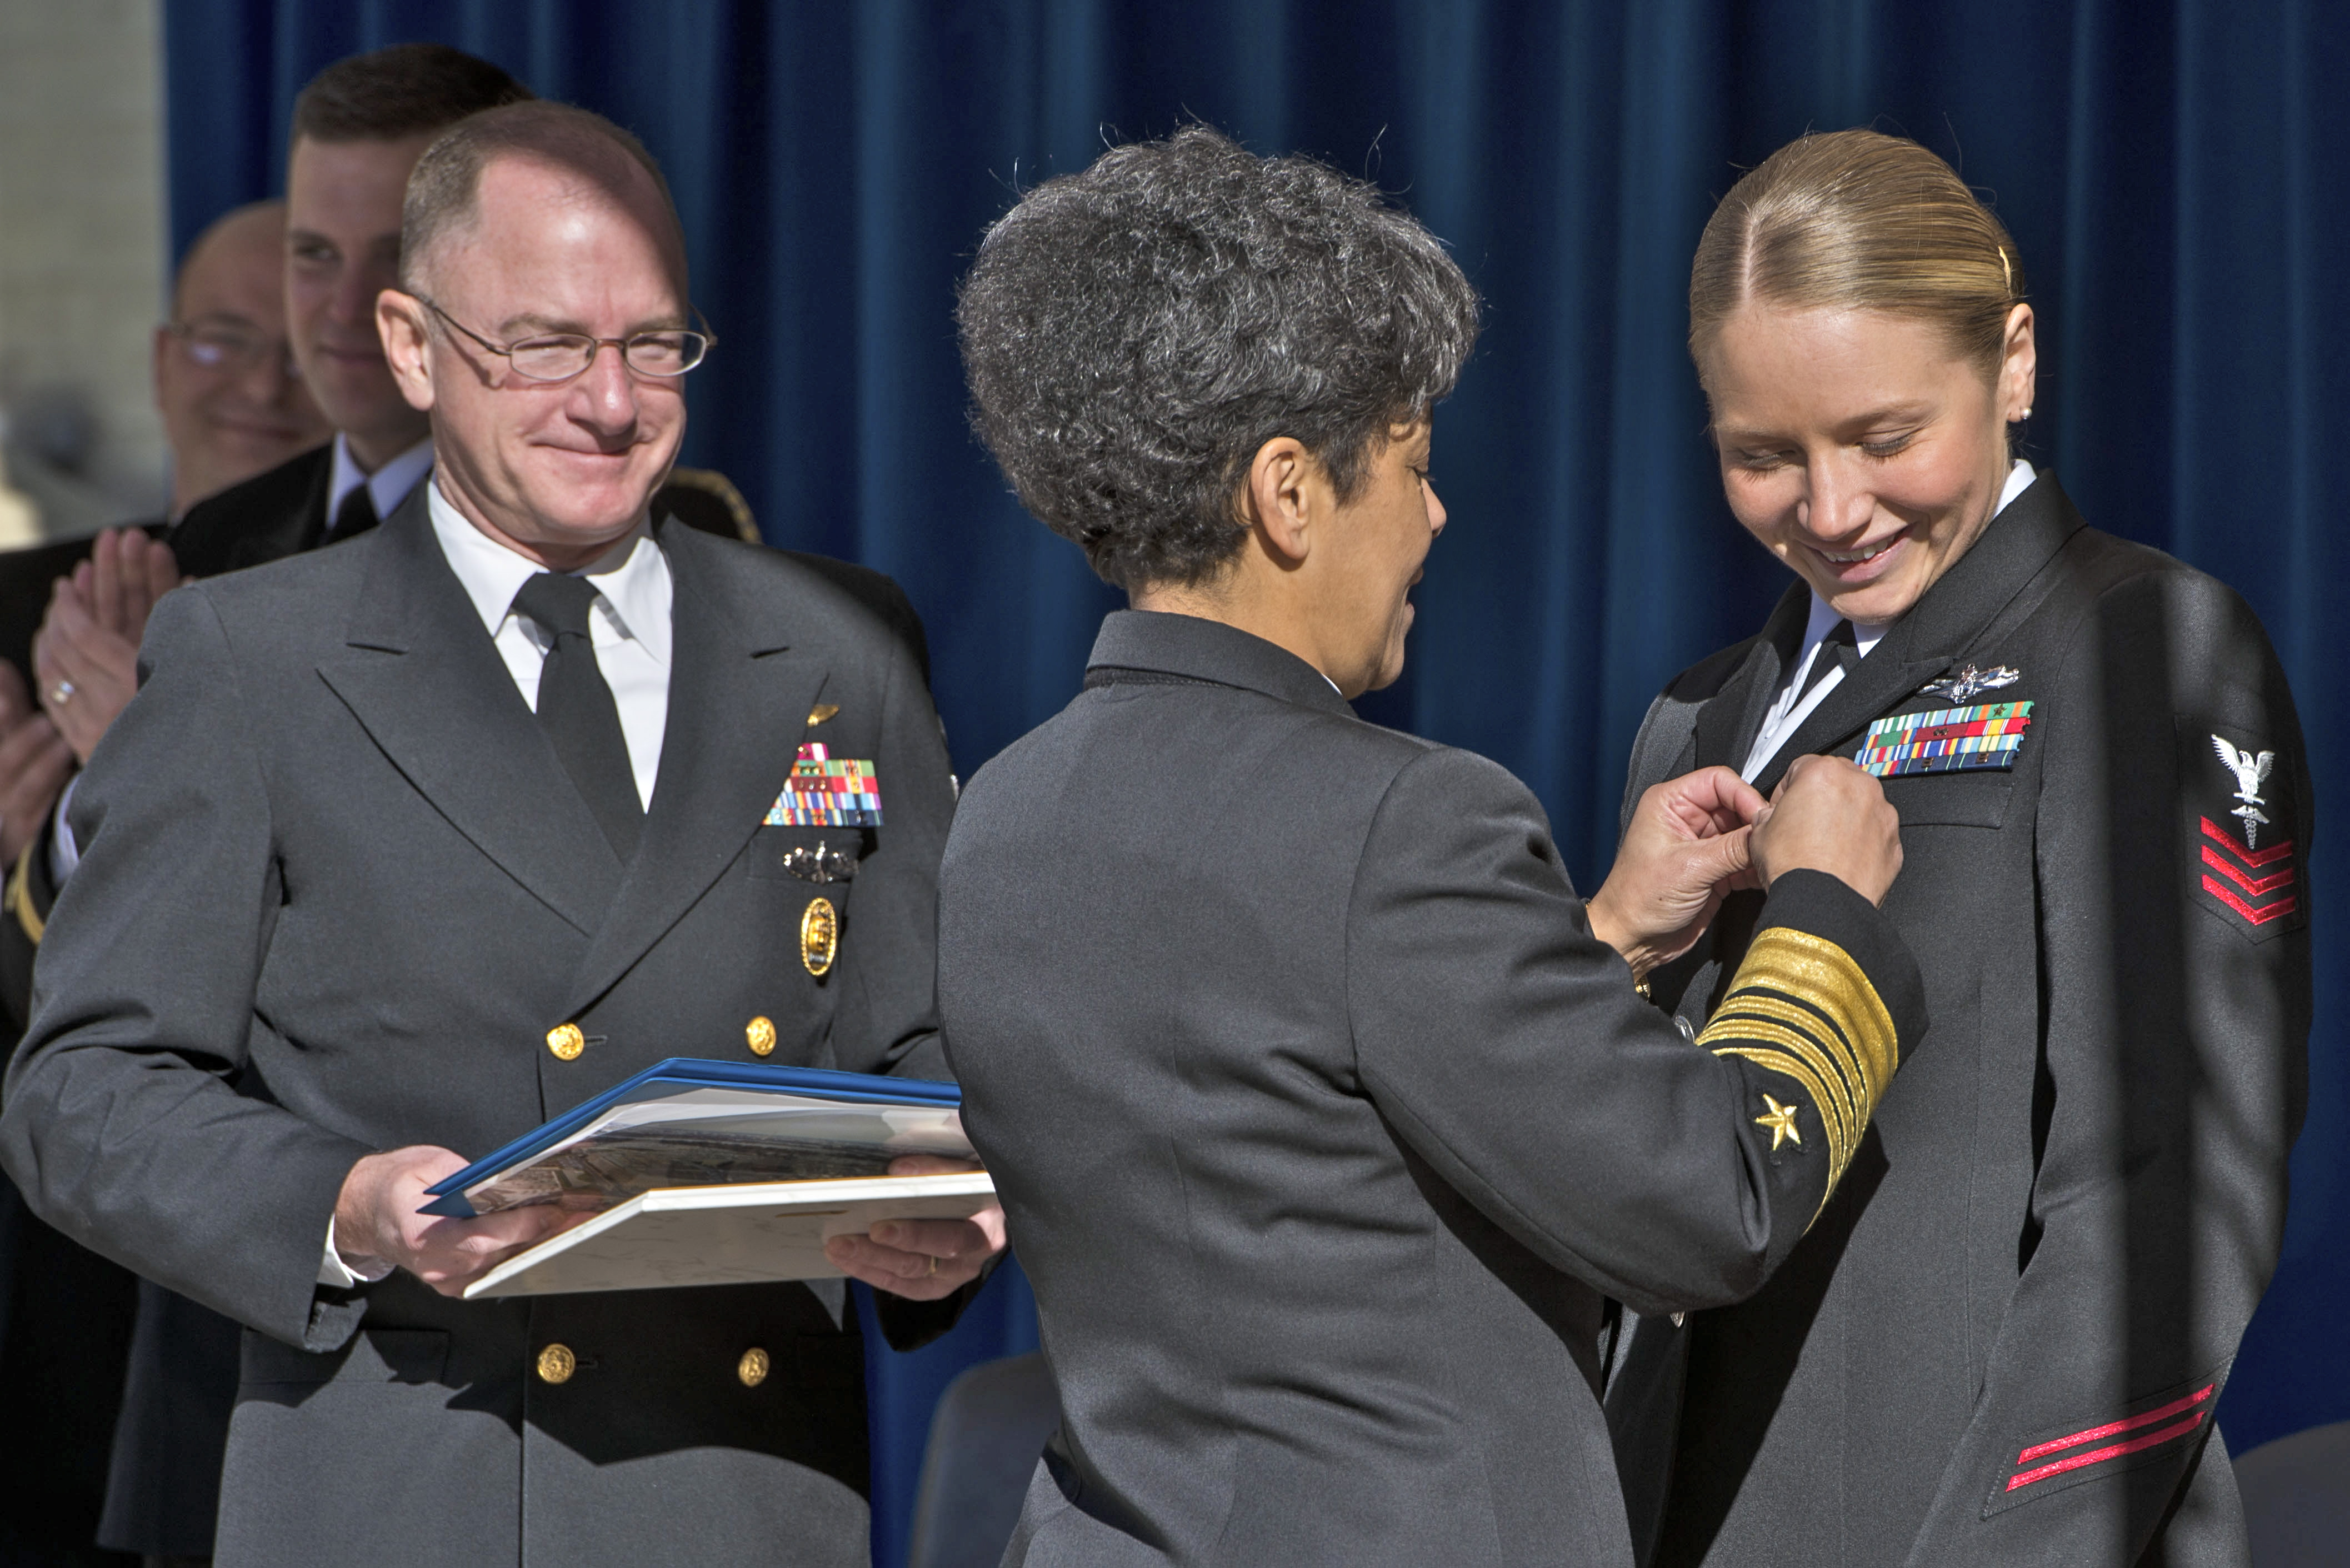 Vice Chief of Naval Operations Michelle Howard presents an award to Hospital Corpsman 1st Class Jessica Wentlent upon her selection as the 2015 Shore Sailor of the Year during a ceremony at the Pentagon. (U.S. Navy photo by Mass Communication Specialist 3rd Class Jackie Hart)